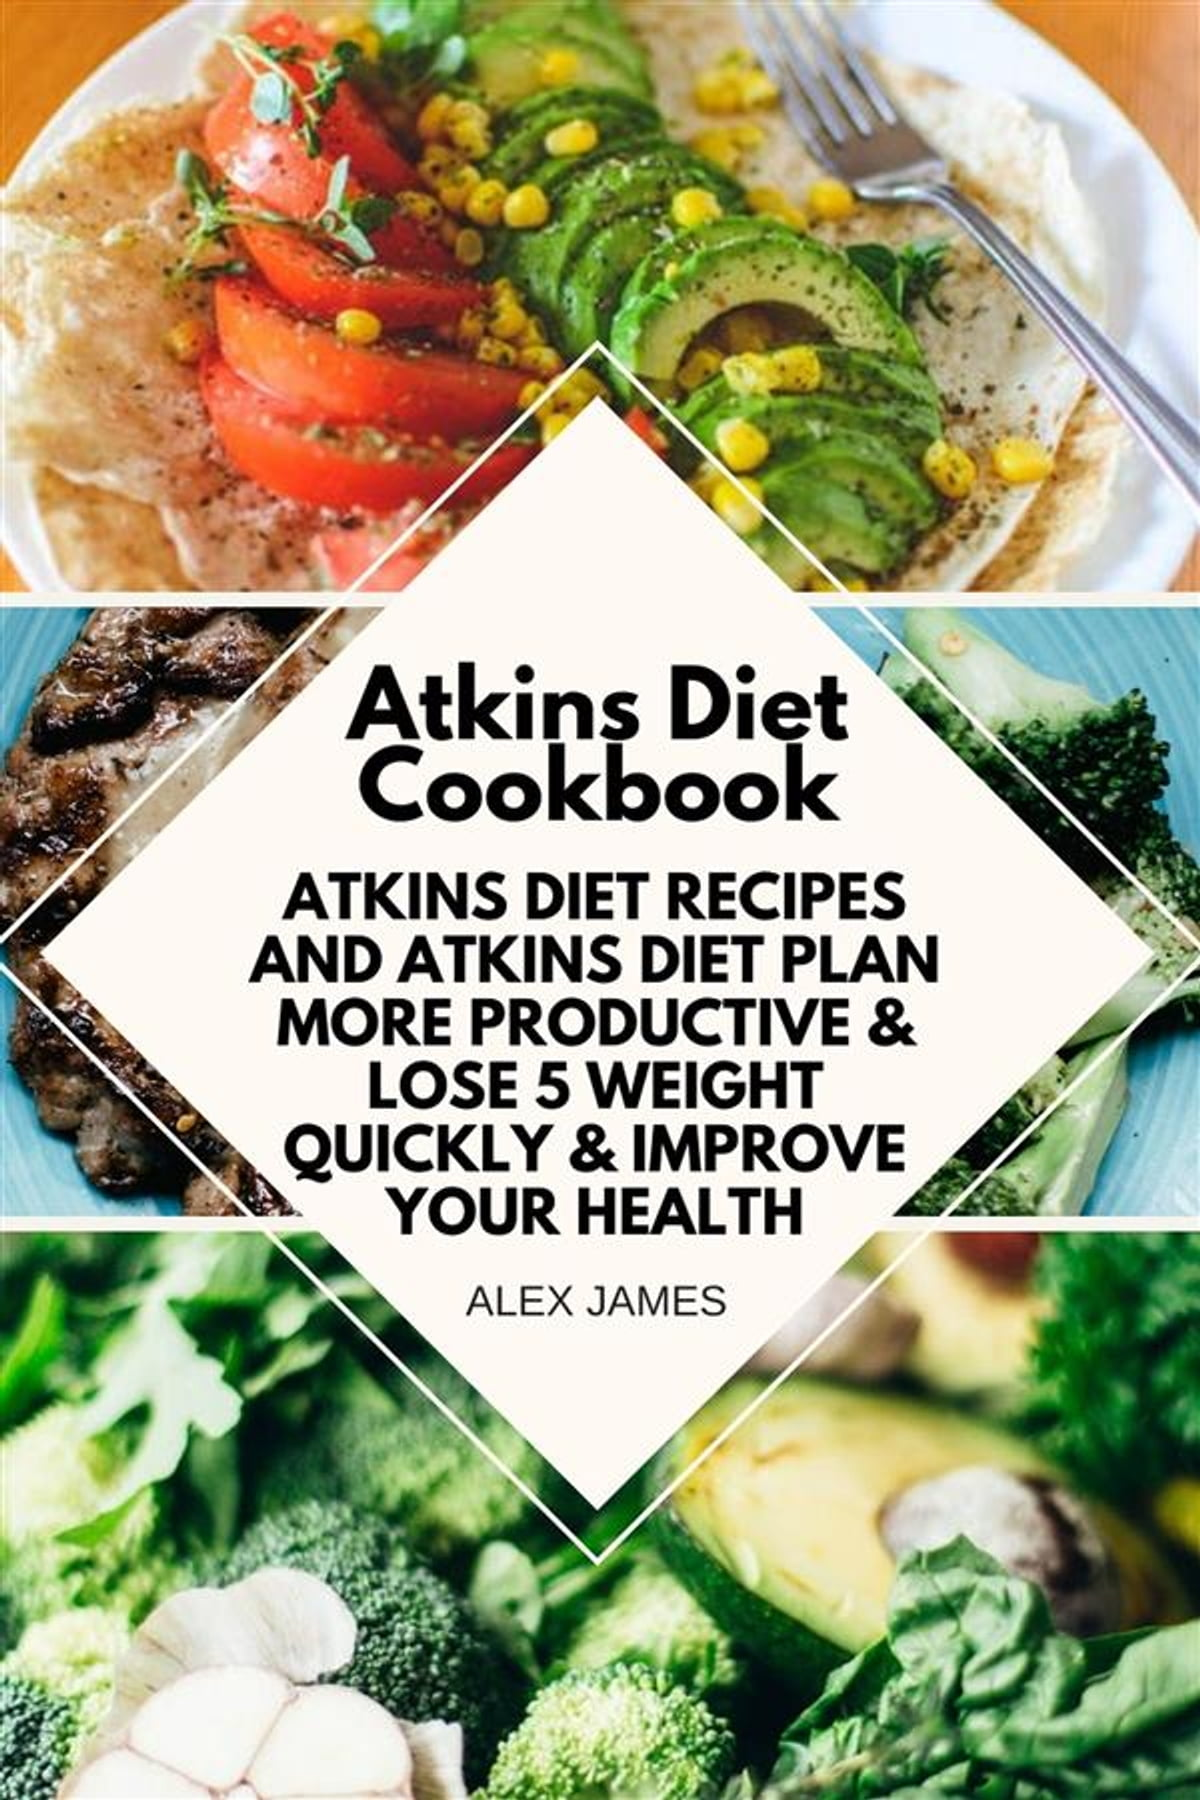 Atkins Diet Cookbook Atkins Diet Recipes And Atkins Diet Plan To Lose Weight Quickly Improve Your Health Ebook By Alex James 9788835333715 Rakuten Kobo